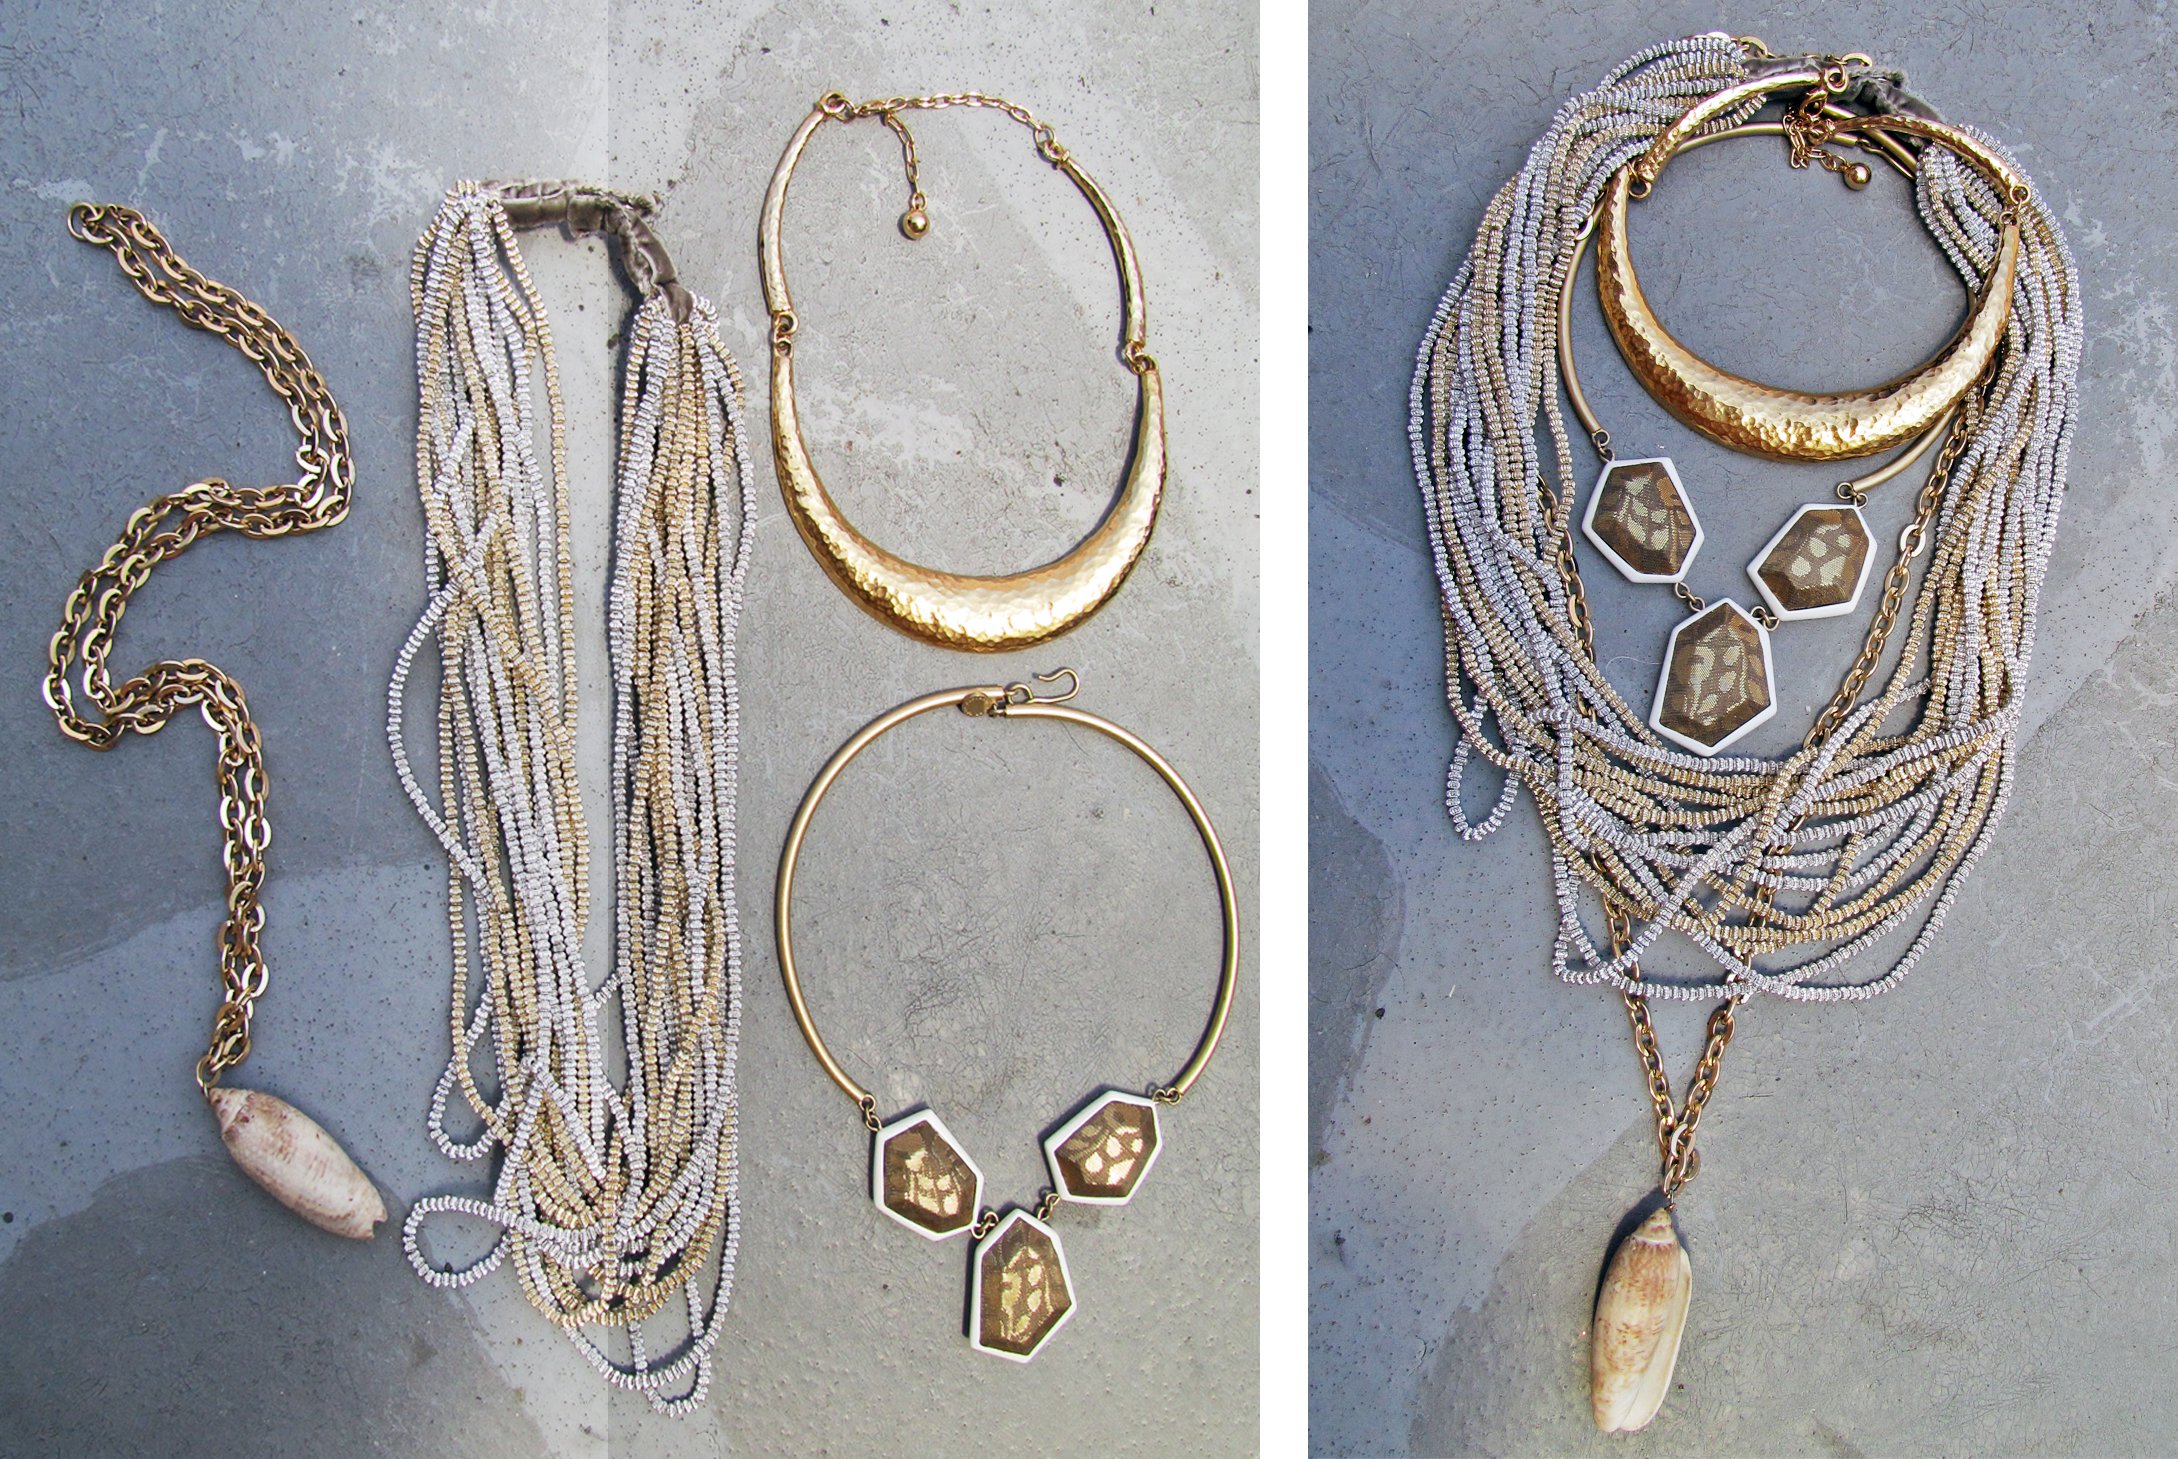 gold-silver-layered-necklaces-marc-jacobs-vintage-shell